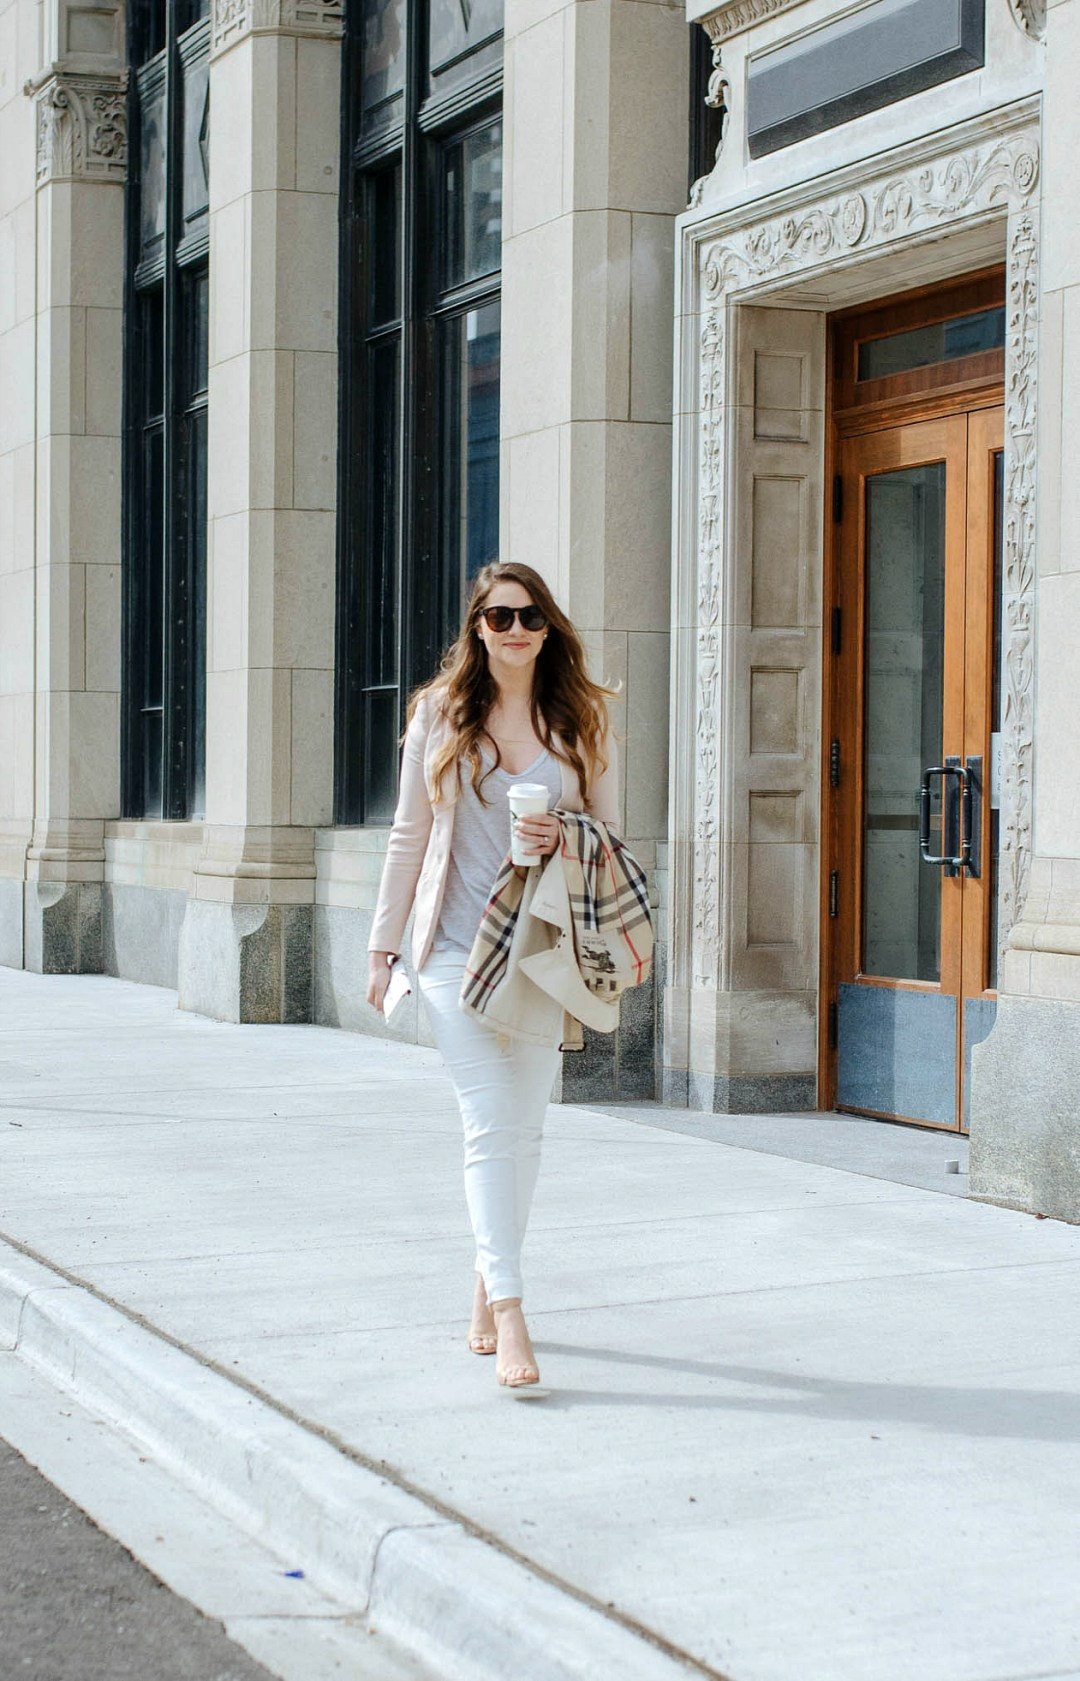 Workwear-office-style-outfit-working-girl-spring-fashion-monday-friday-rosecitystyleguide-fashionblog-lifestyle-blog-windsor